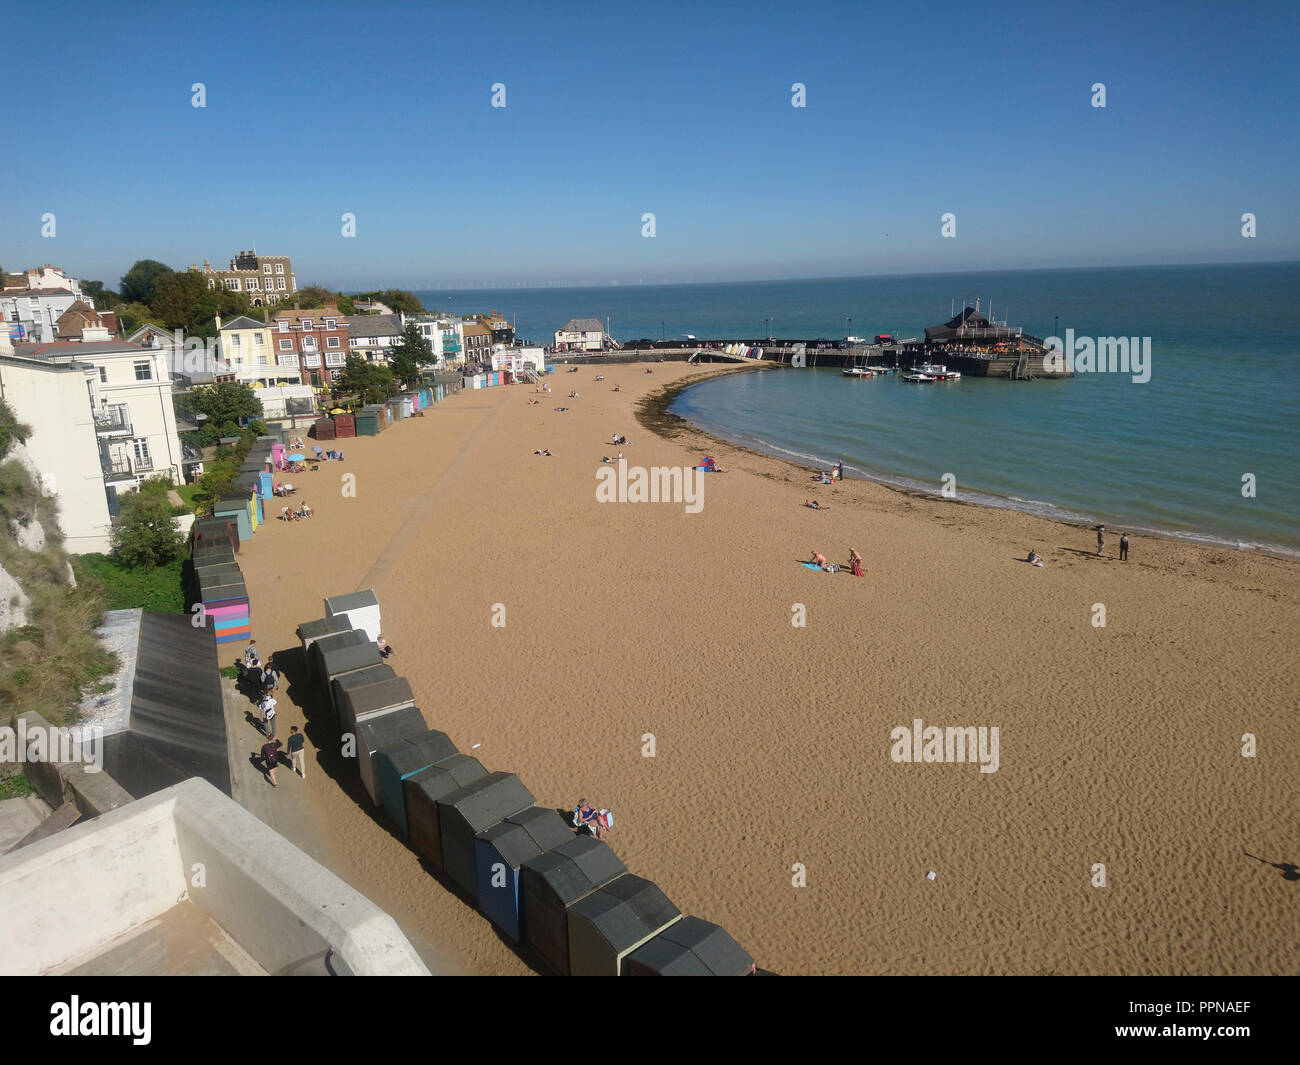 Broadstairs, Kent. 27th Sept 2018. UK Weather: Some people enjoying a sunny and warm day in late Autumn at Viking Bay in Broadstairs on the North Kent coast in England Great Britain UK Credit: Shaun Higson - Image Collection/Alamy Live News - Stock Image